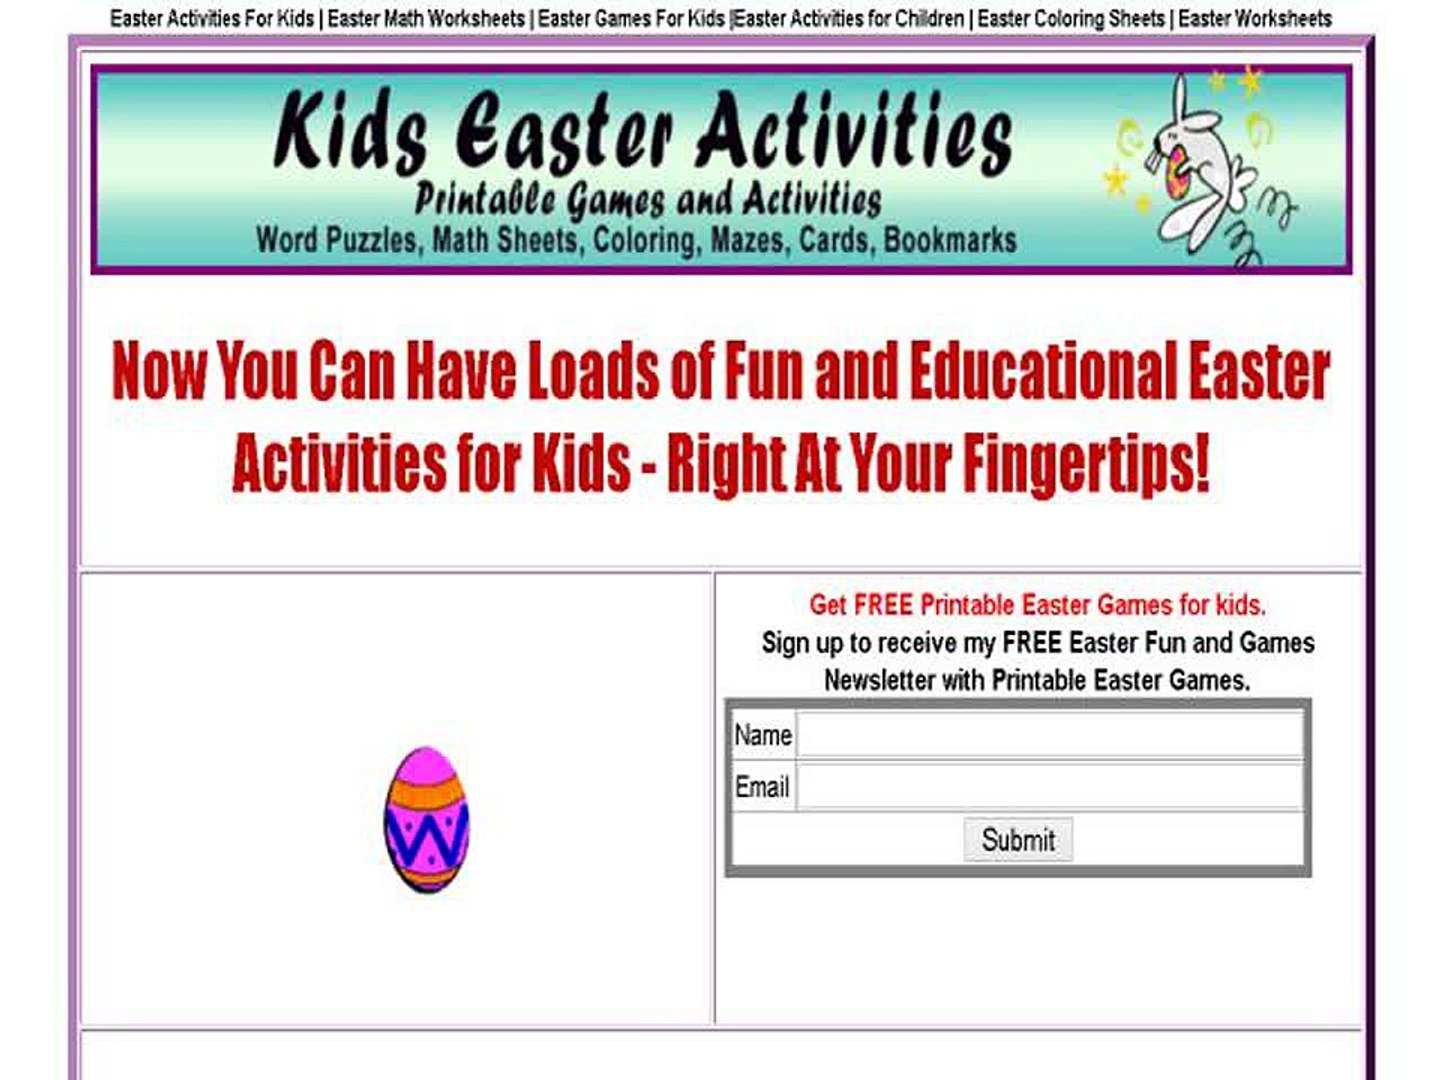 picture relating to Printable Easter Games named Small children Easter Pursuits - Printable Easter Actions And Game titles